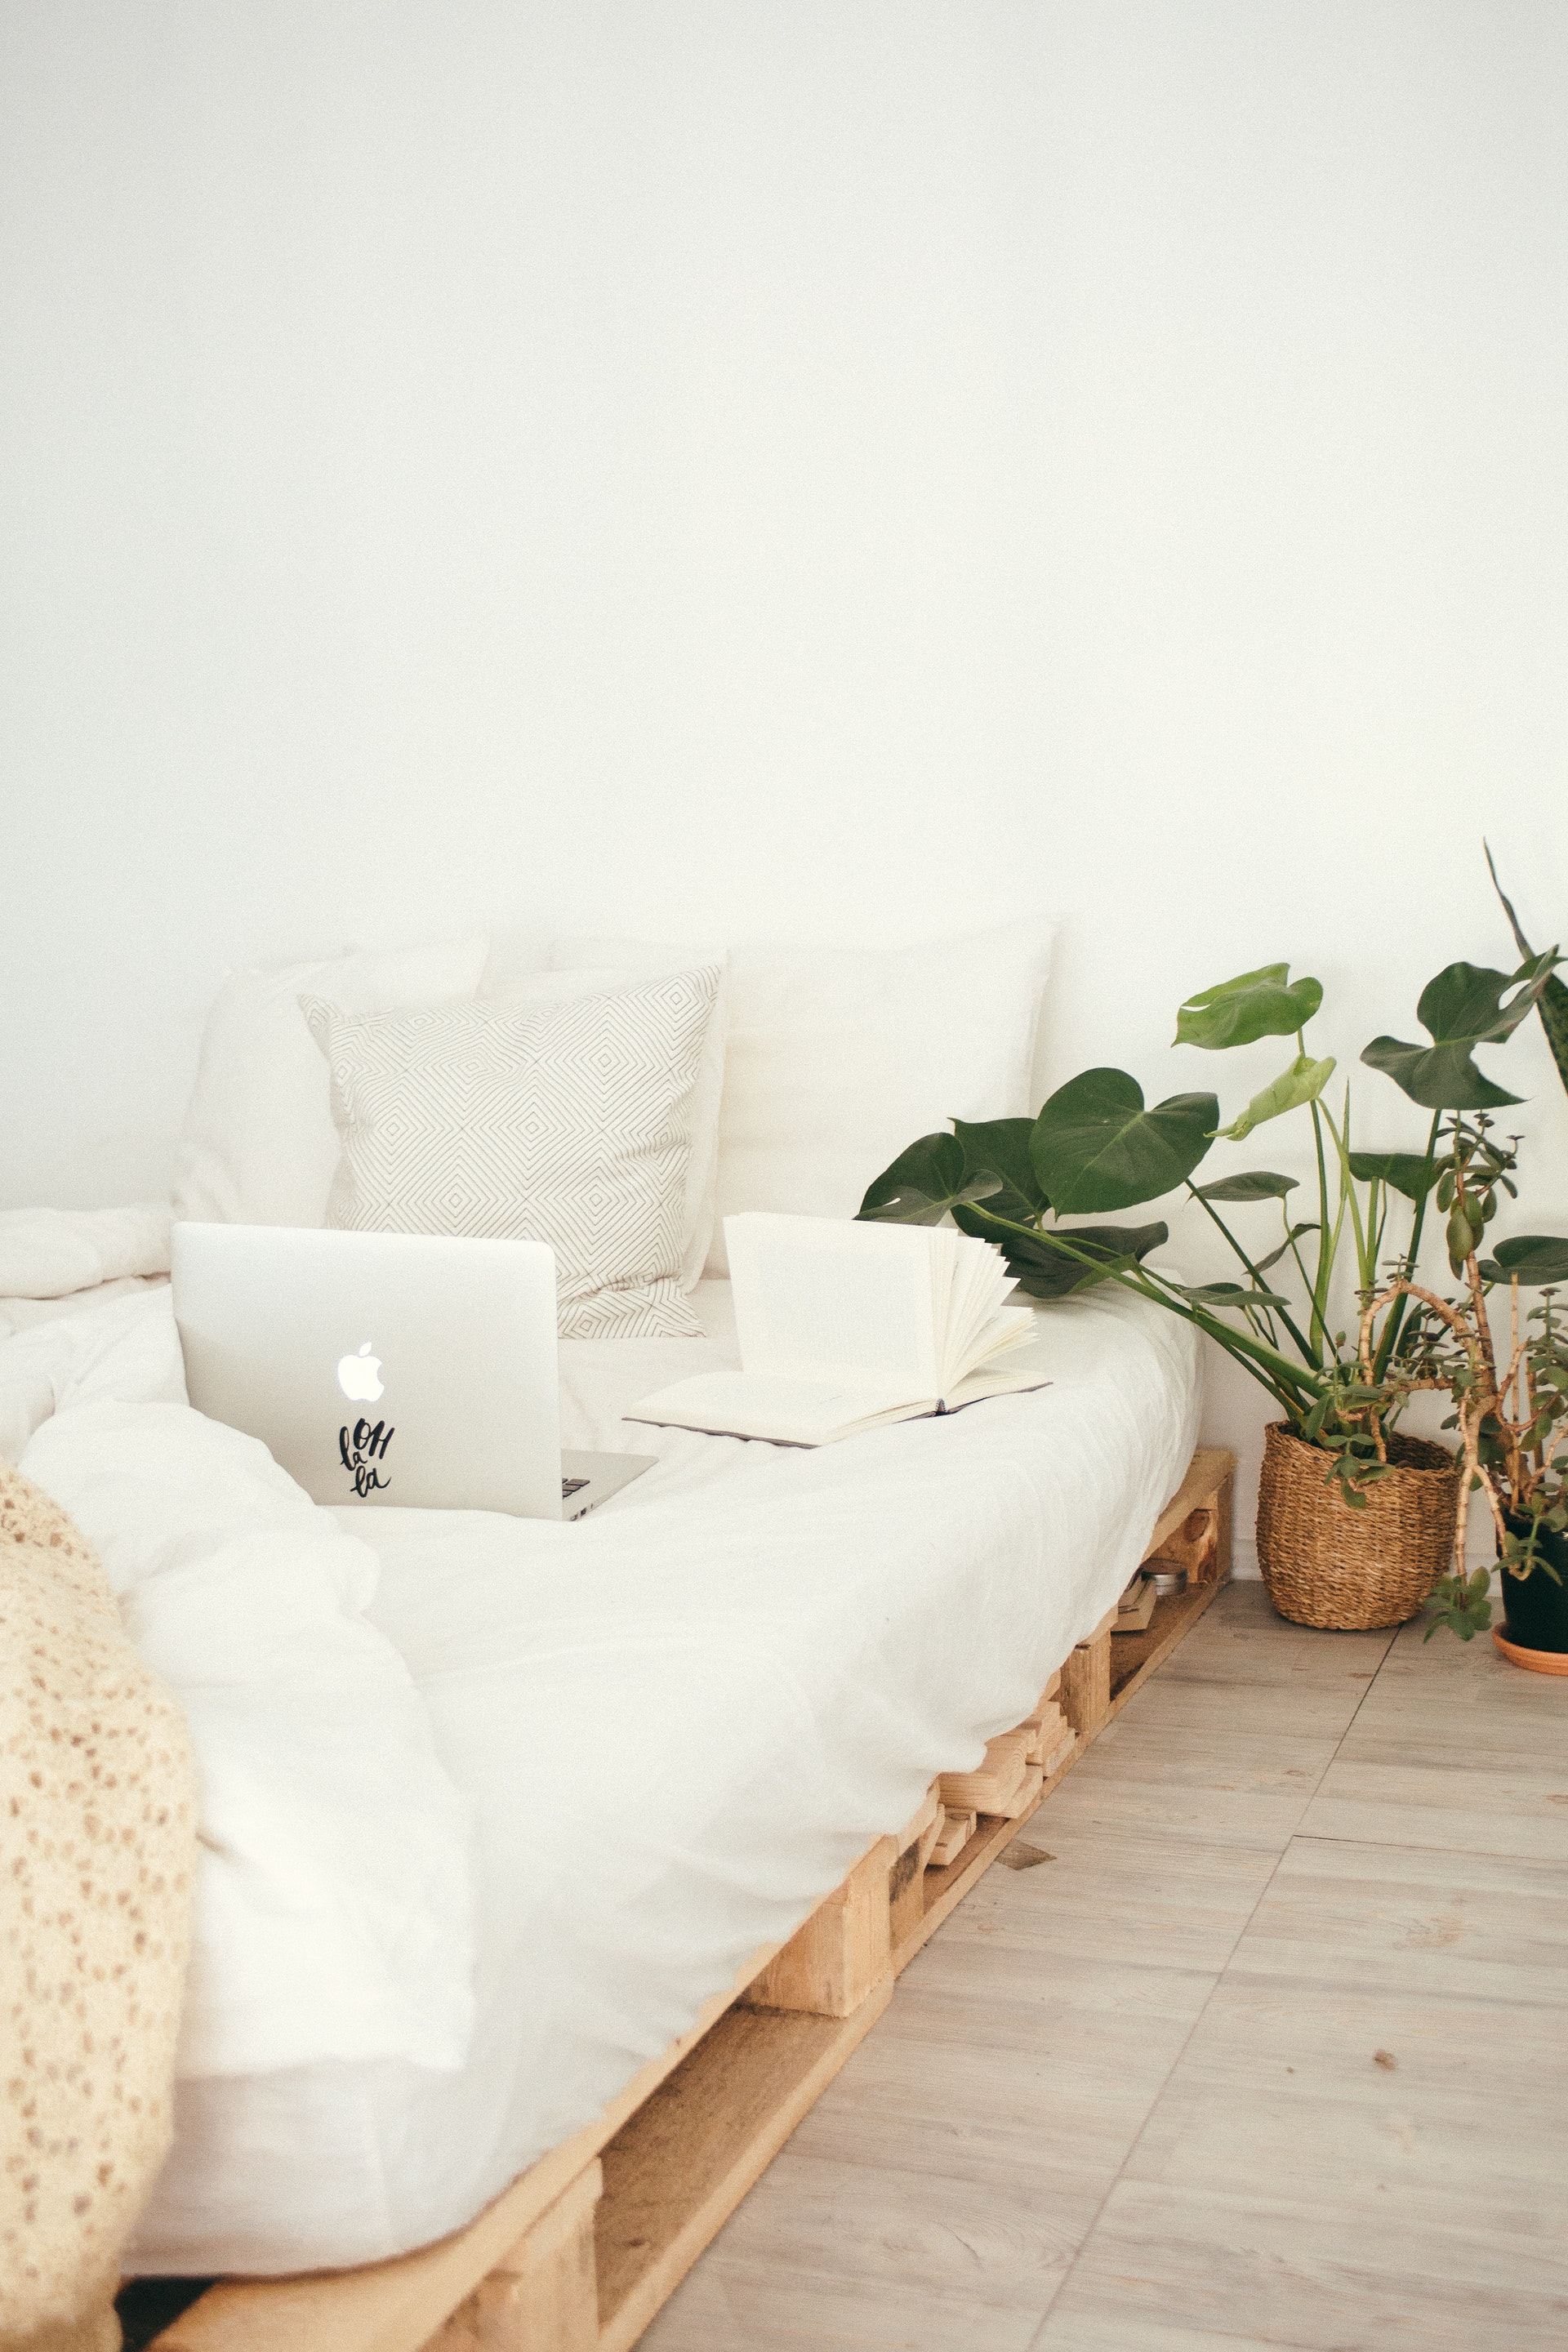 Choosing The Right Platform Bed For Your Room